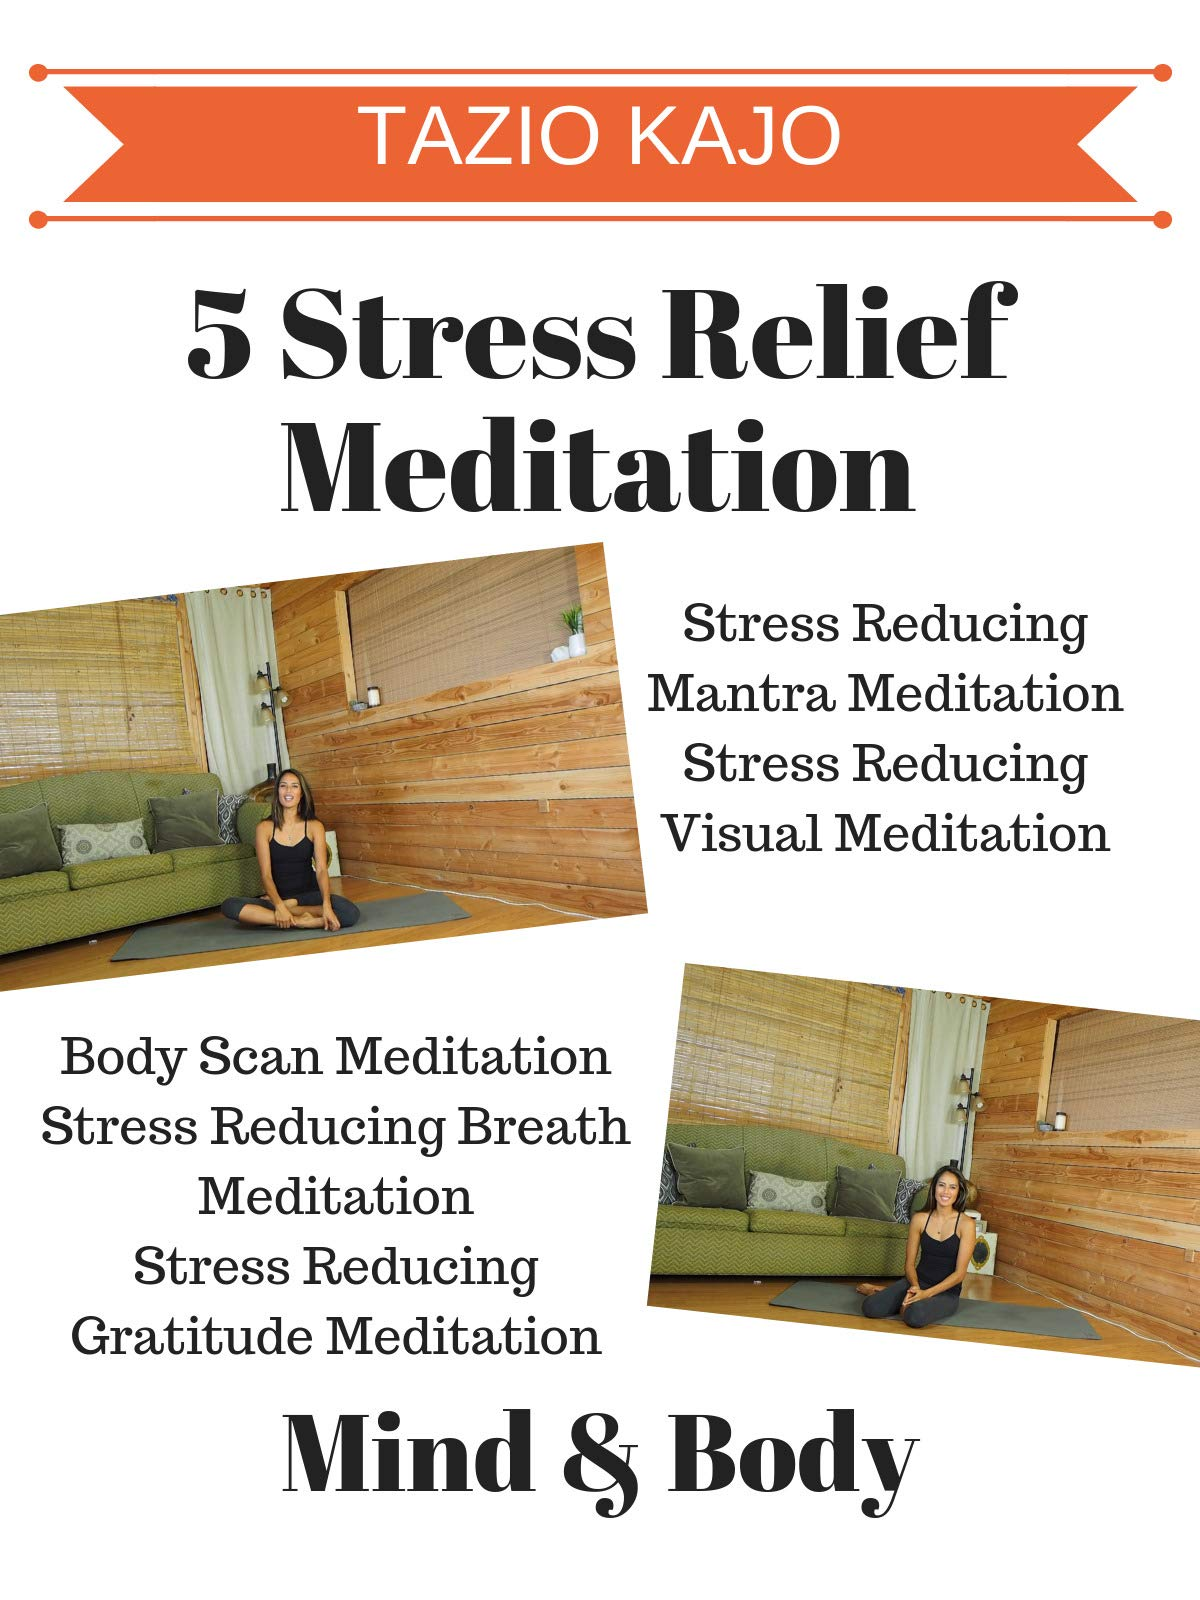 5 Stress Relief Meditations